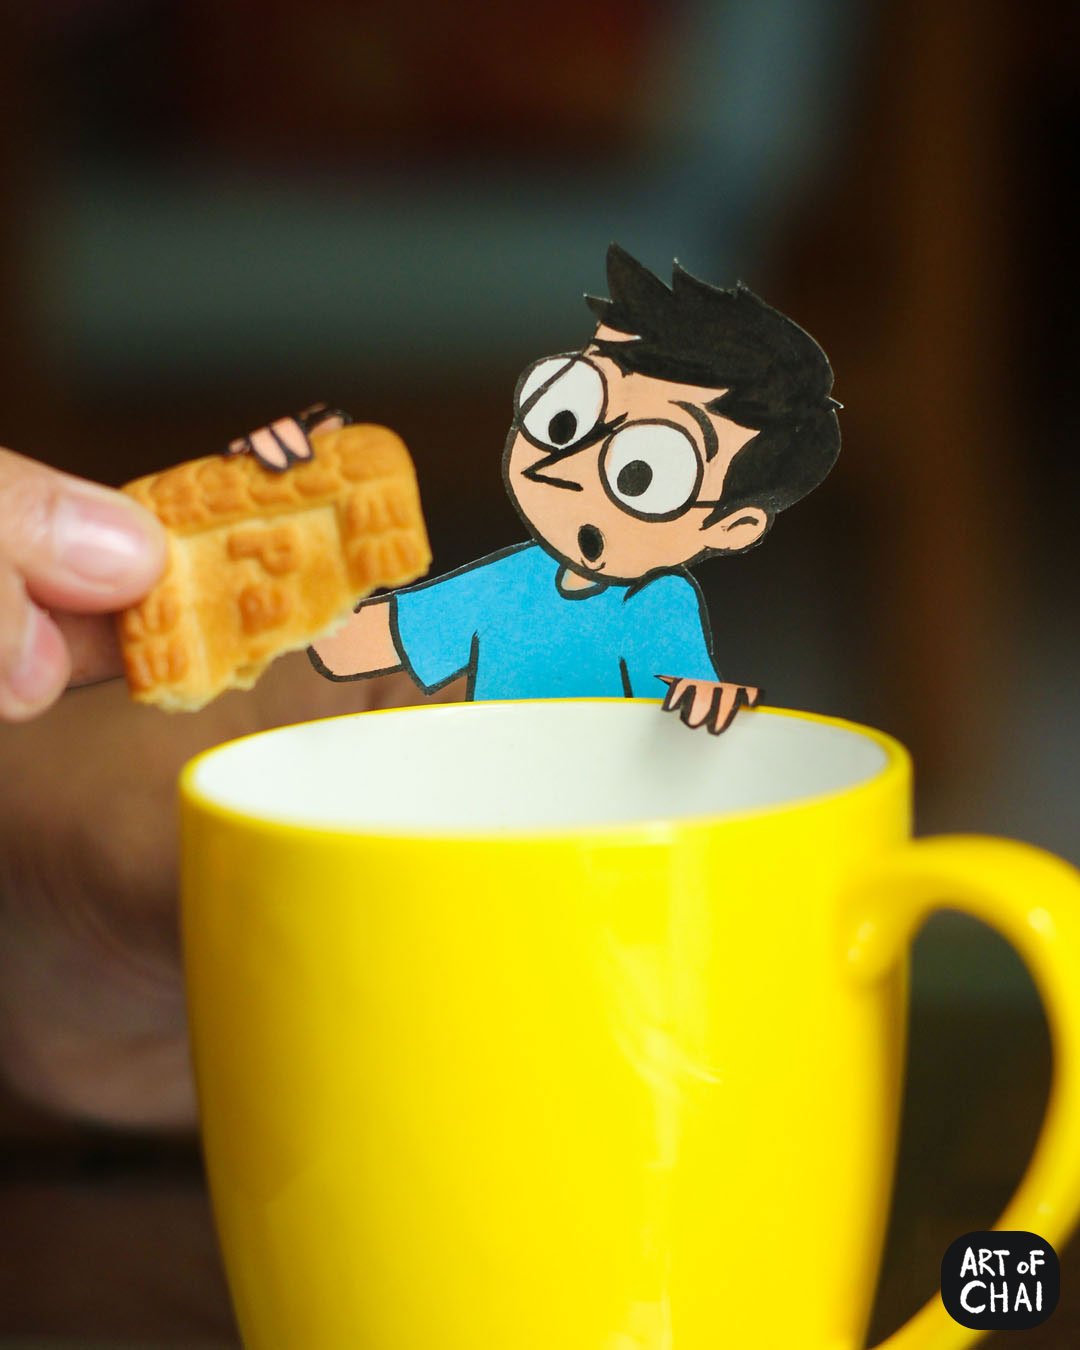 Dipping a glucose biscuit in chai and eating it before it plops into the cup is a skill. Chai has a long way to go before mastering it.